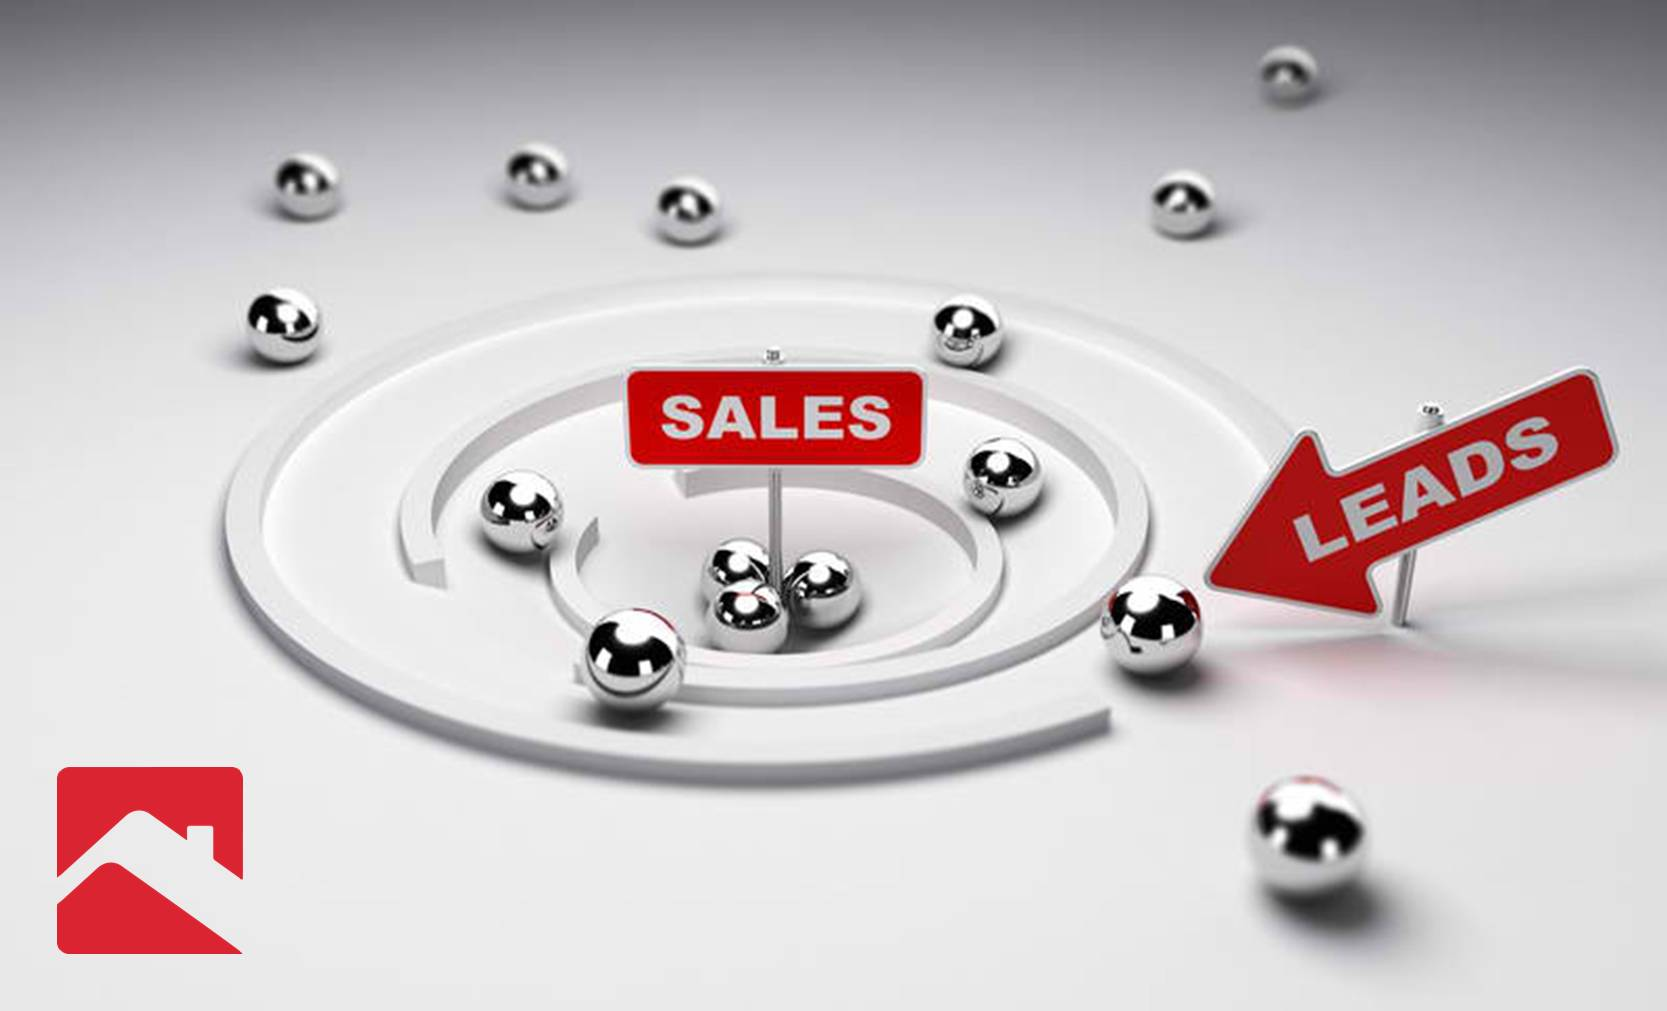 Choosing the right lead generating systems - Having the right lead generating system is key to having a successful business, We will show you how to chose the right one and ultimately turn leads into buyers and sellers.